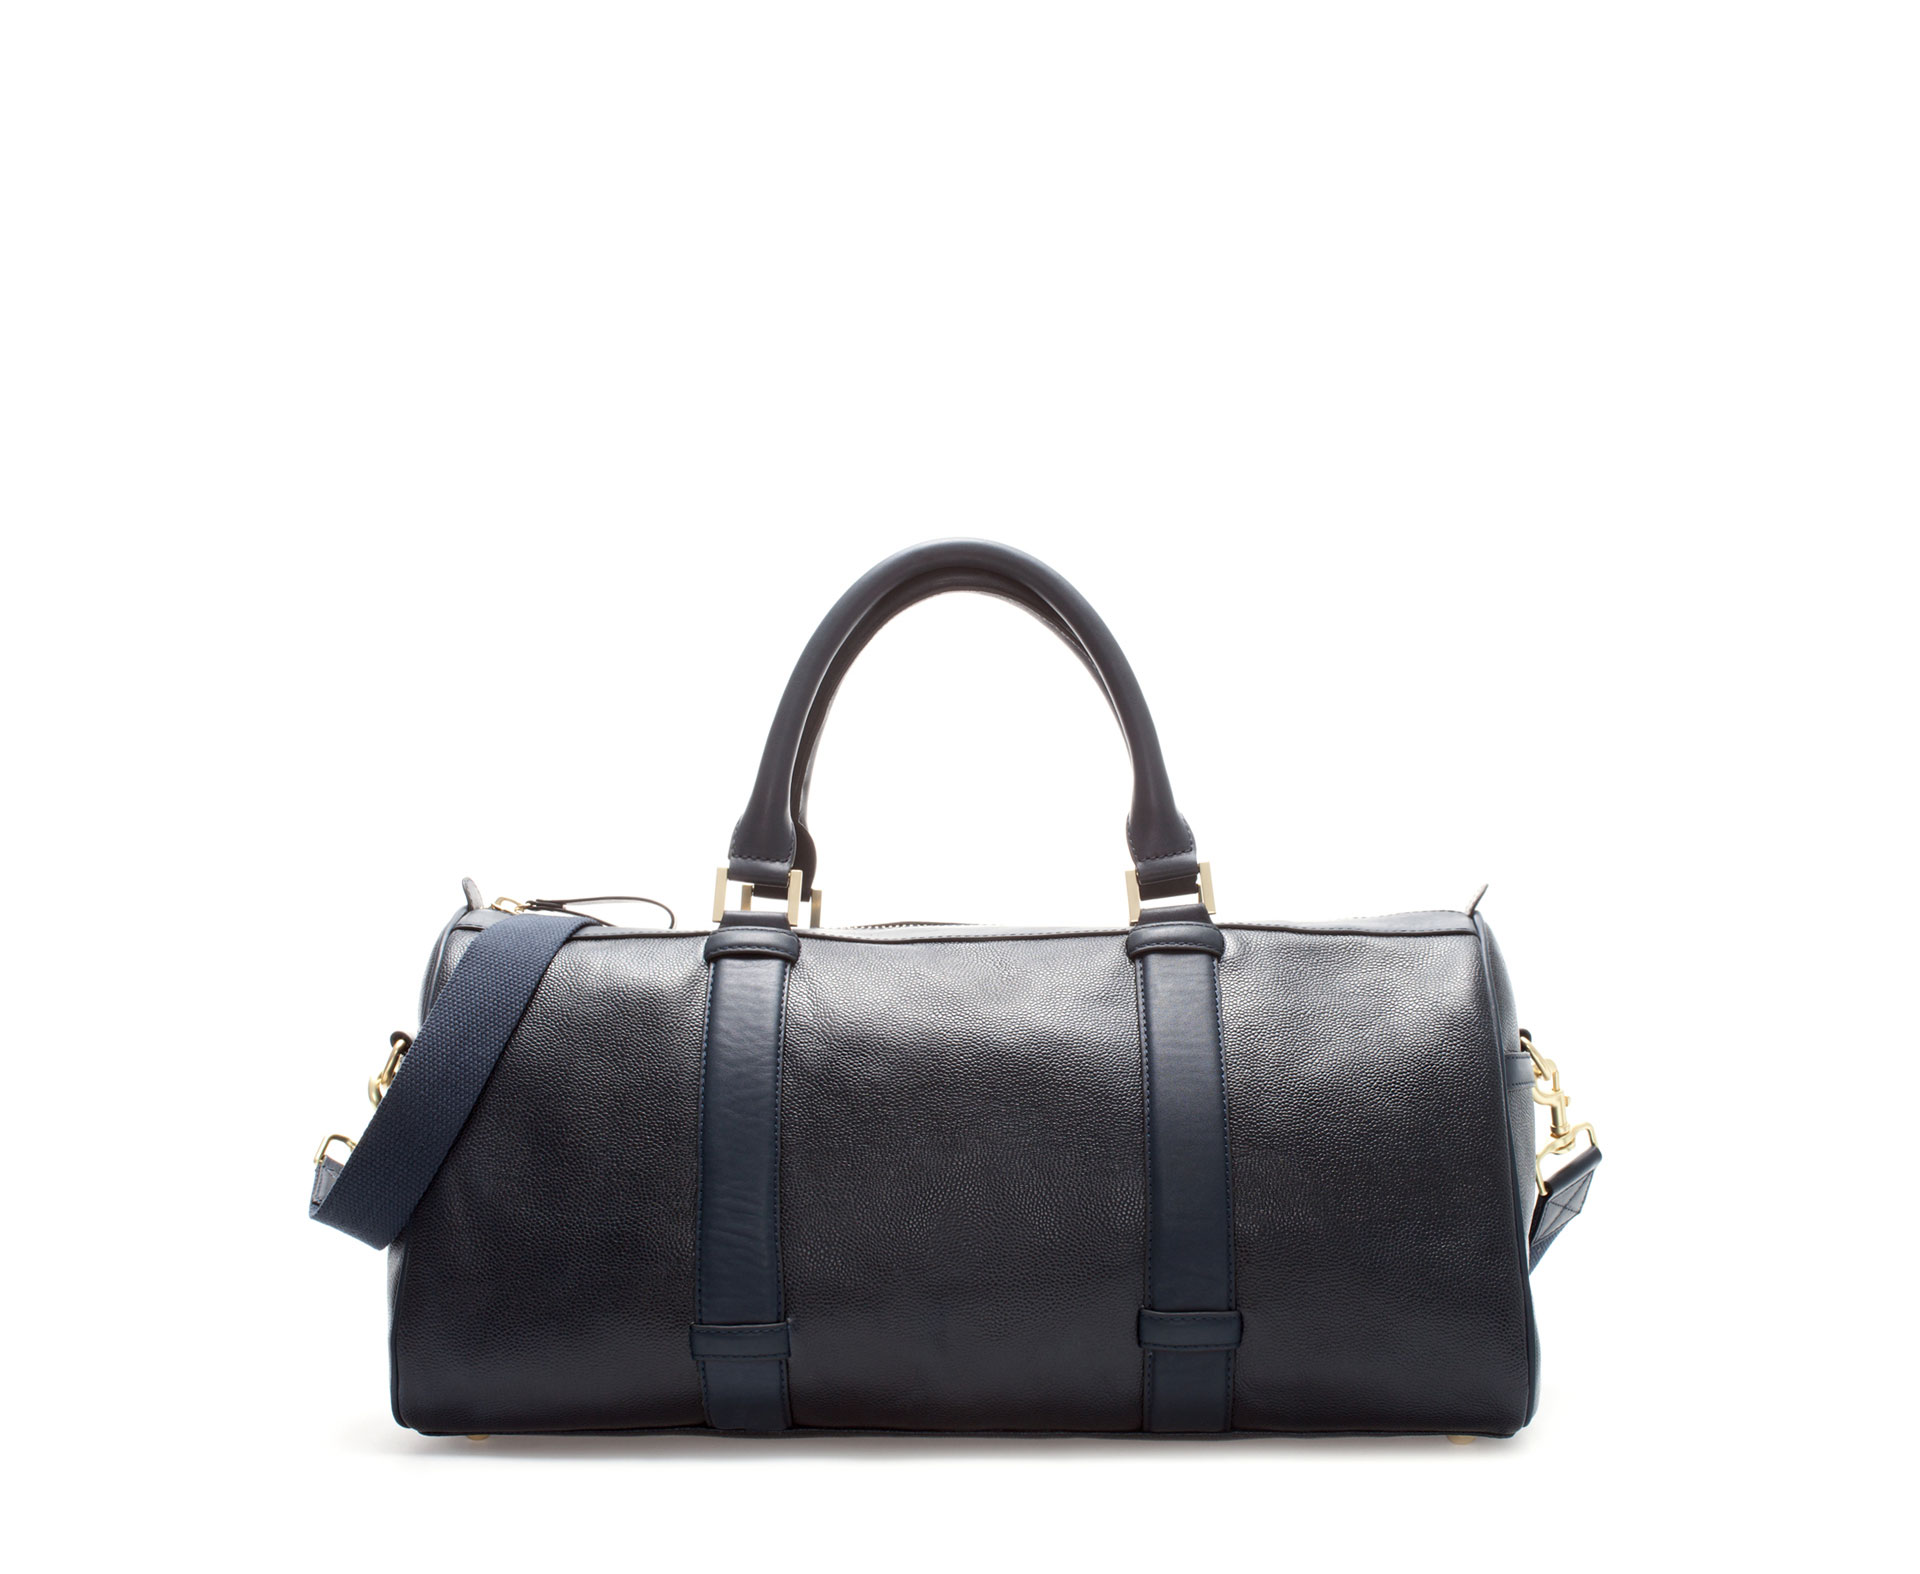 Shop Men's Bowling at eBags - experts in bags and accessories since We offer easy returns, expert advice, and millions of customer reviews.